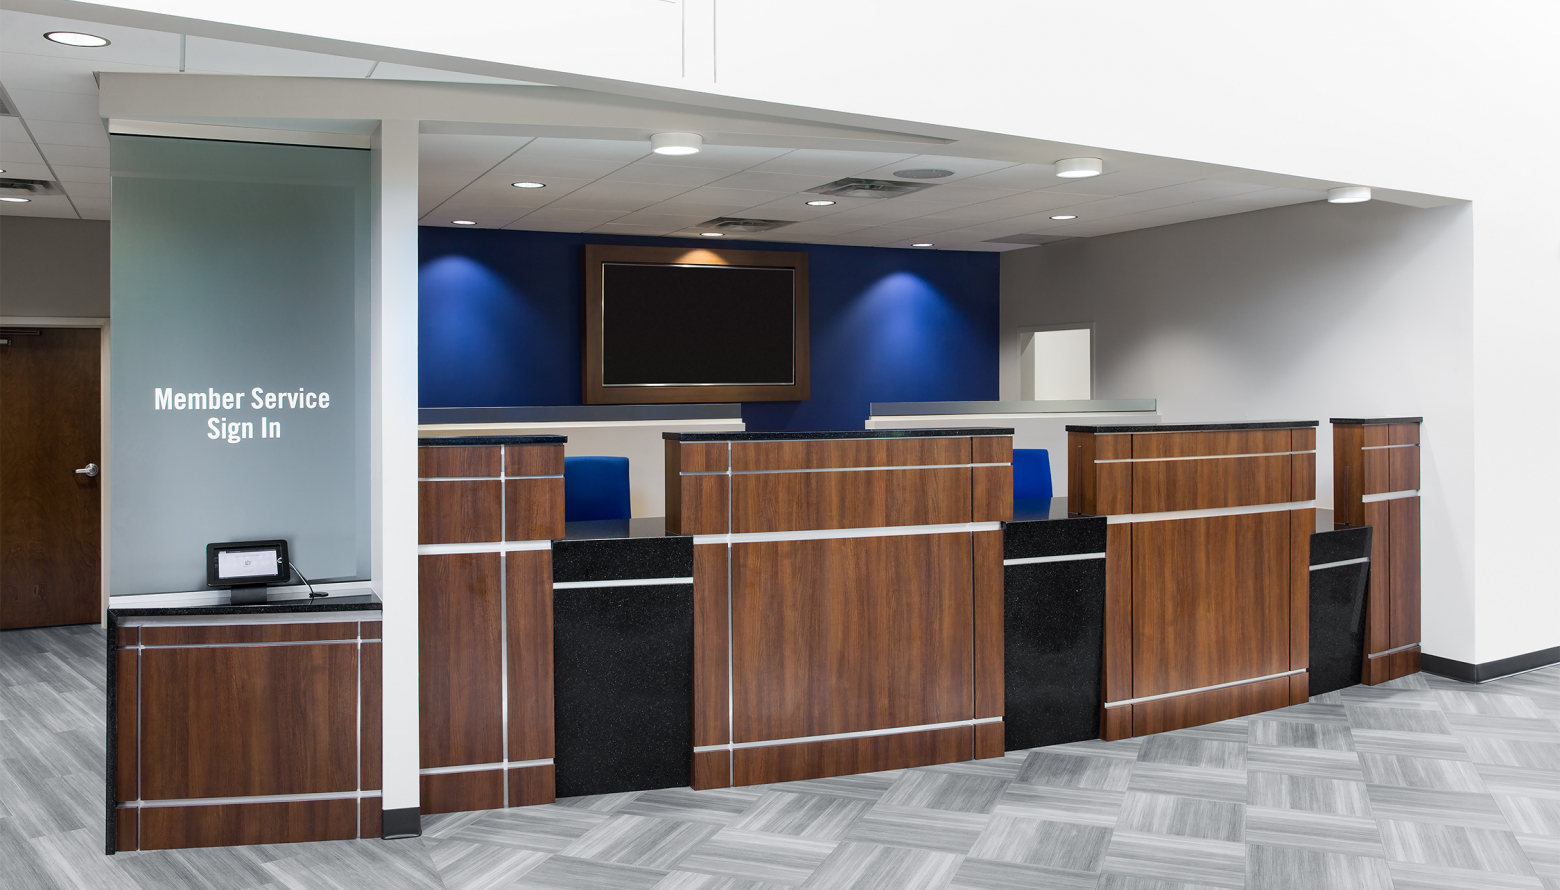 teller area of Patriot Federal Credit Union in Hagerstown, MD